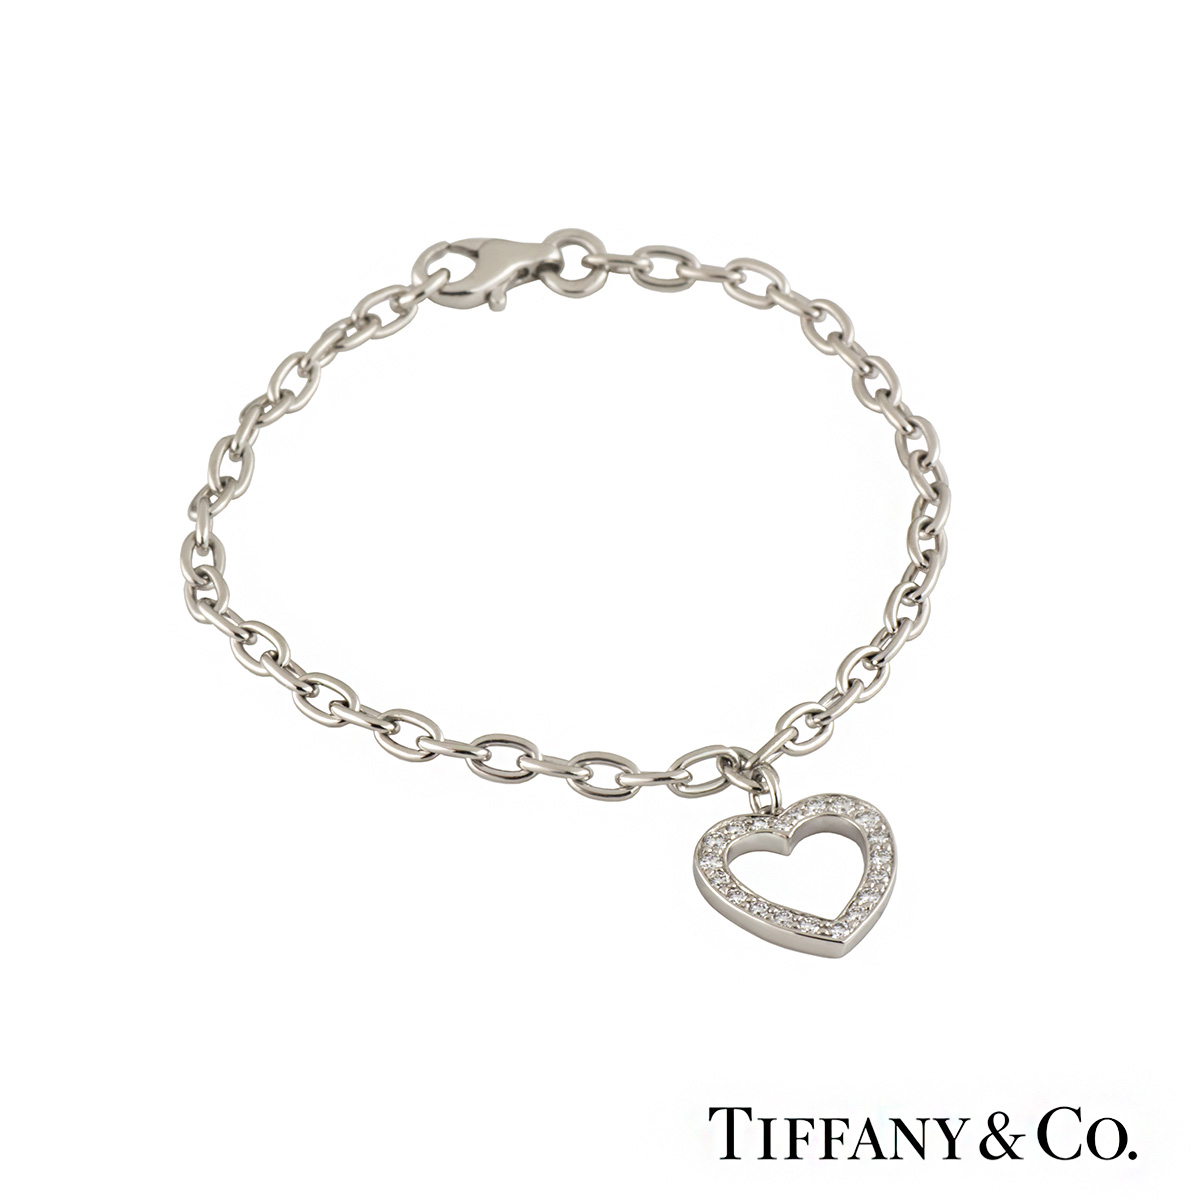 Tiffany & Co. Heart Diamond Bracelet